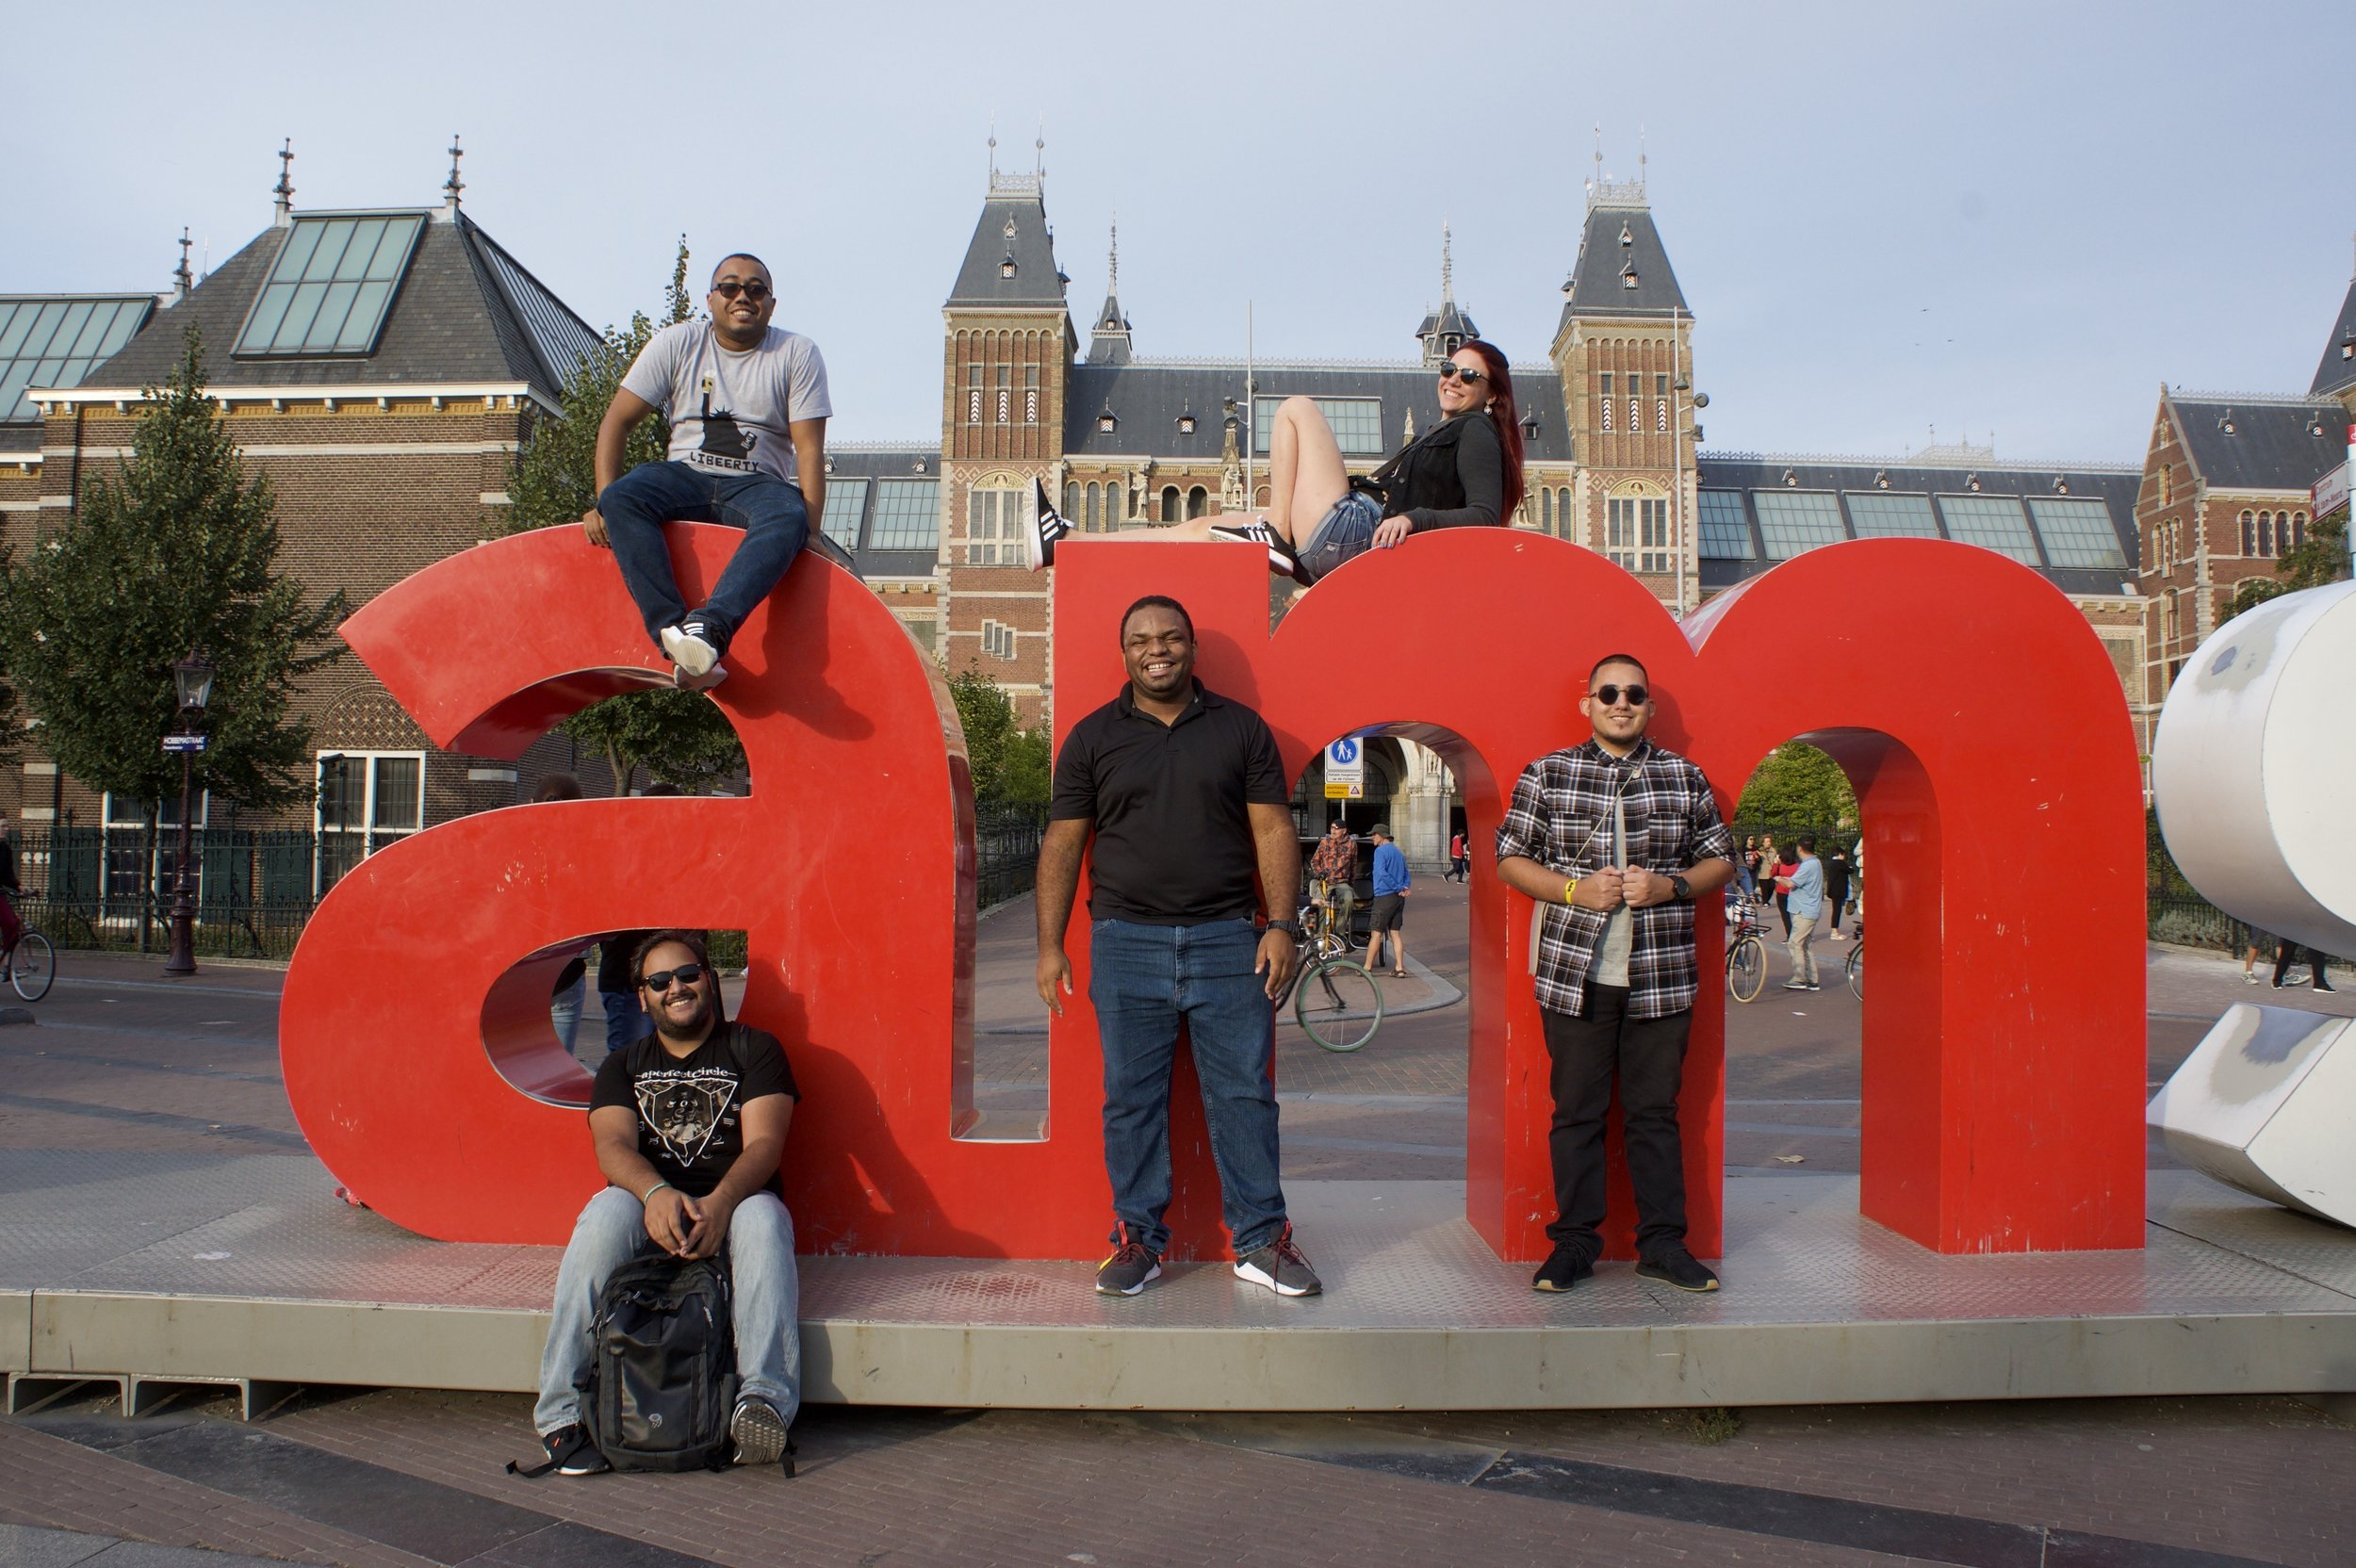 """My Friends on the """"A"""" and """"M"""" of the """"I Amsterdam"""" sign."""